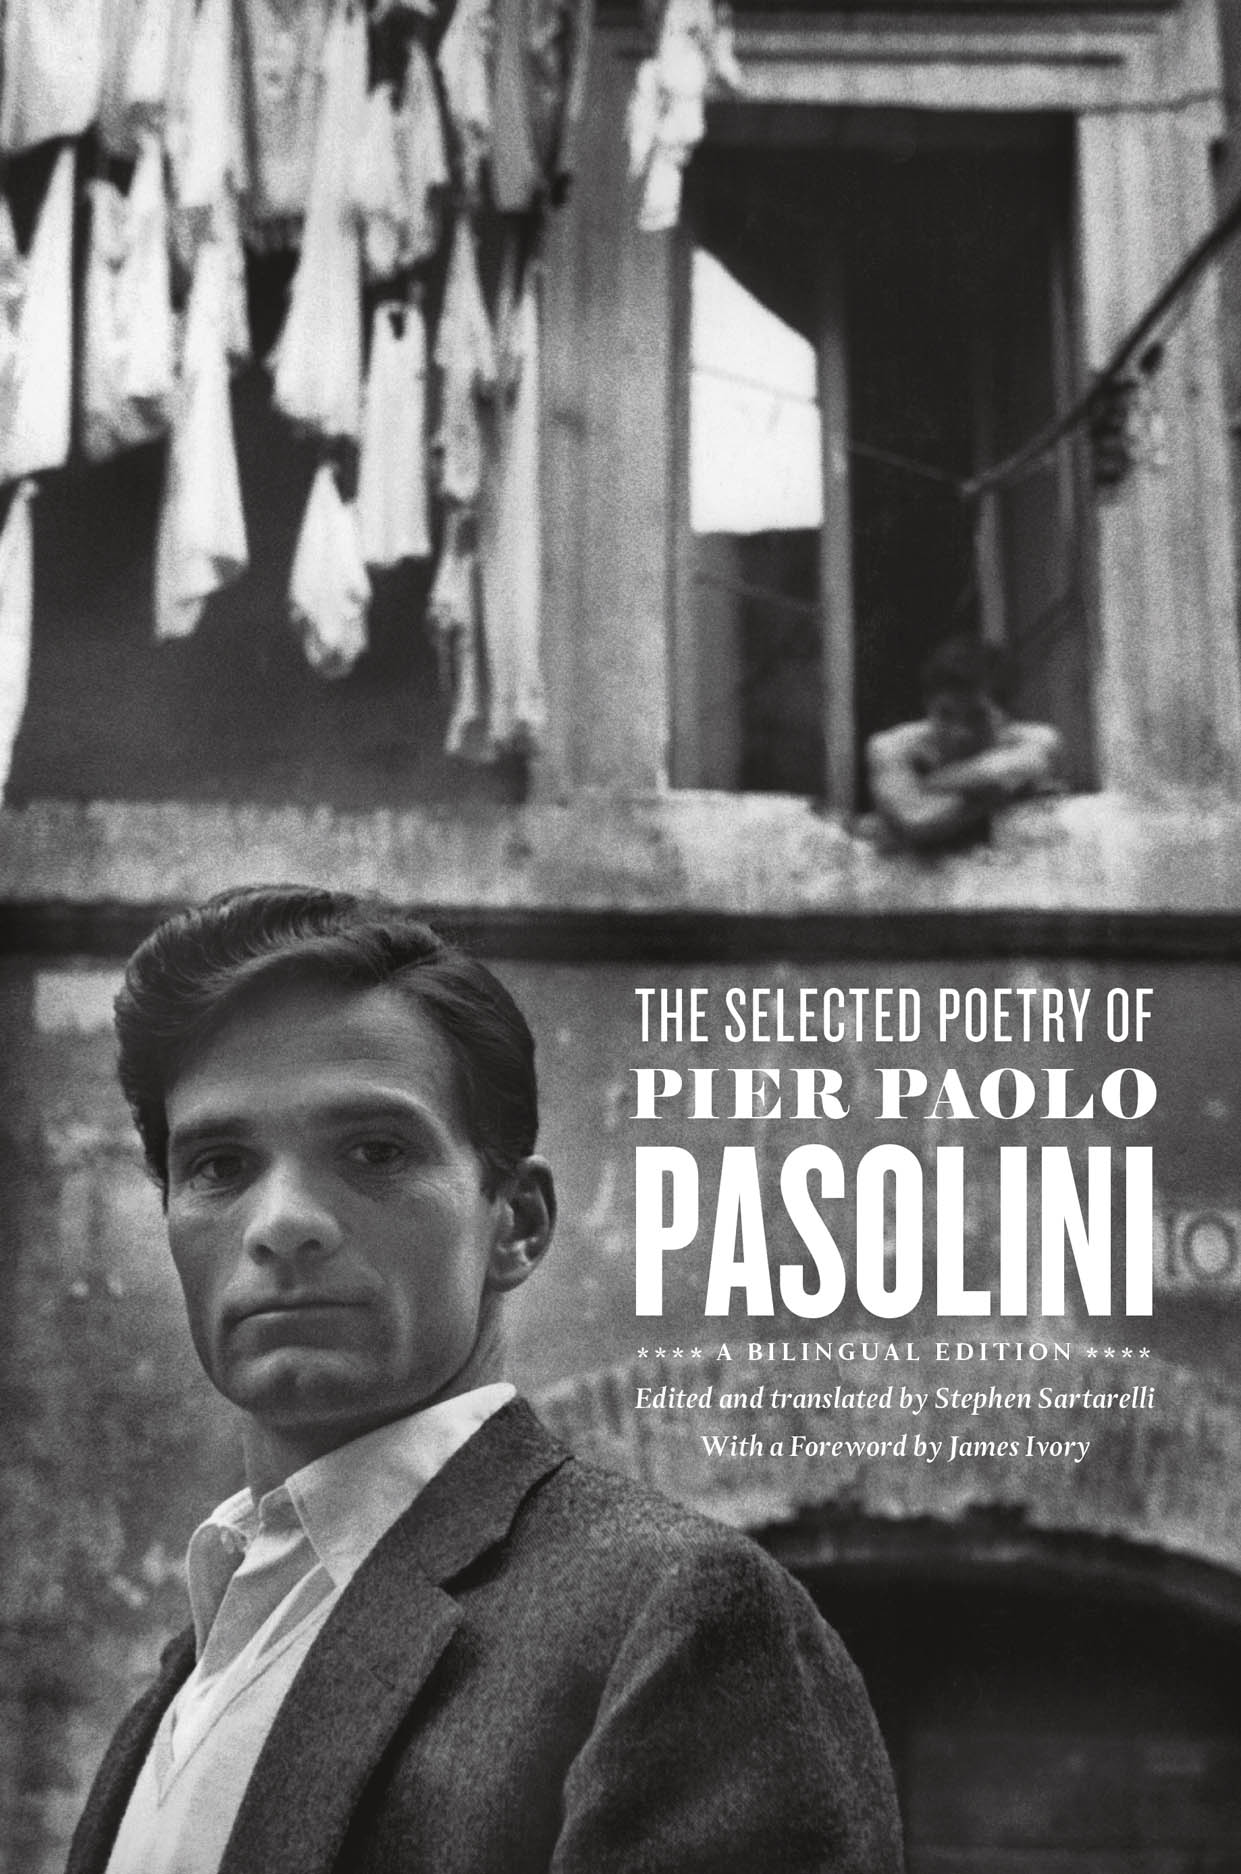 The Selected Poetry of Pier Paolo Pasolini: A Bilingual Edition